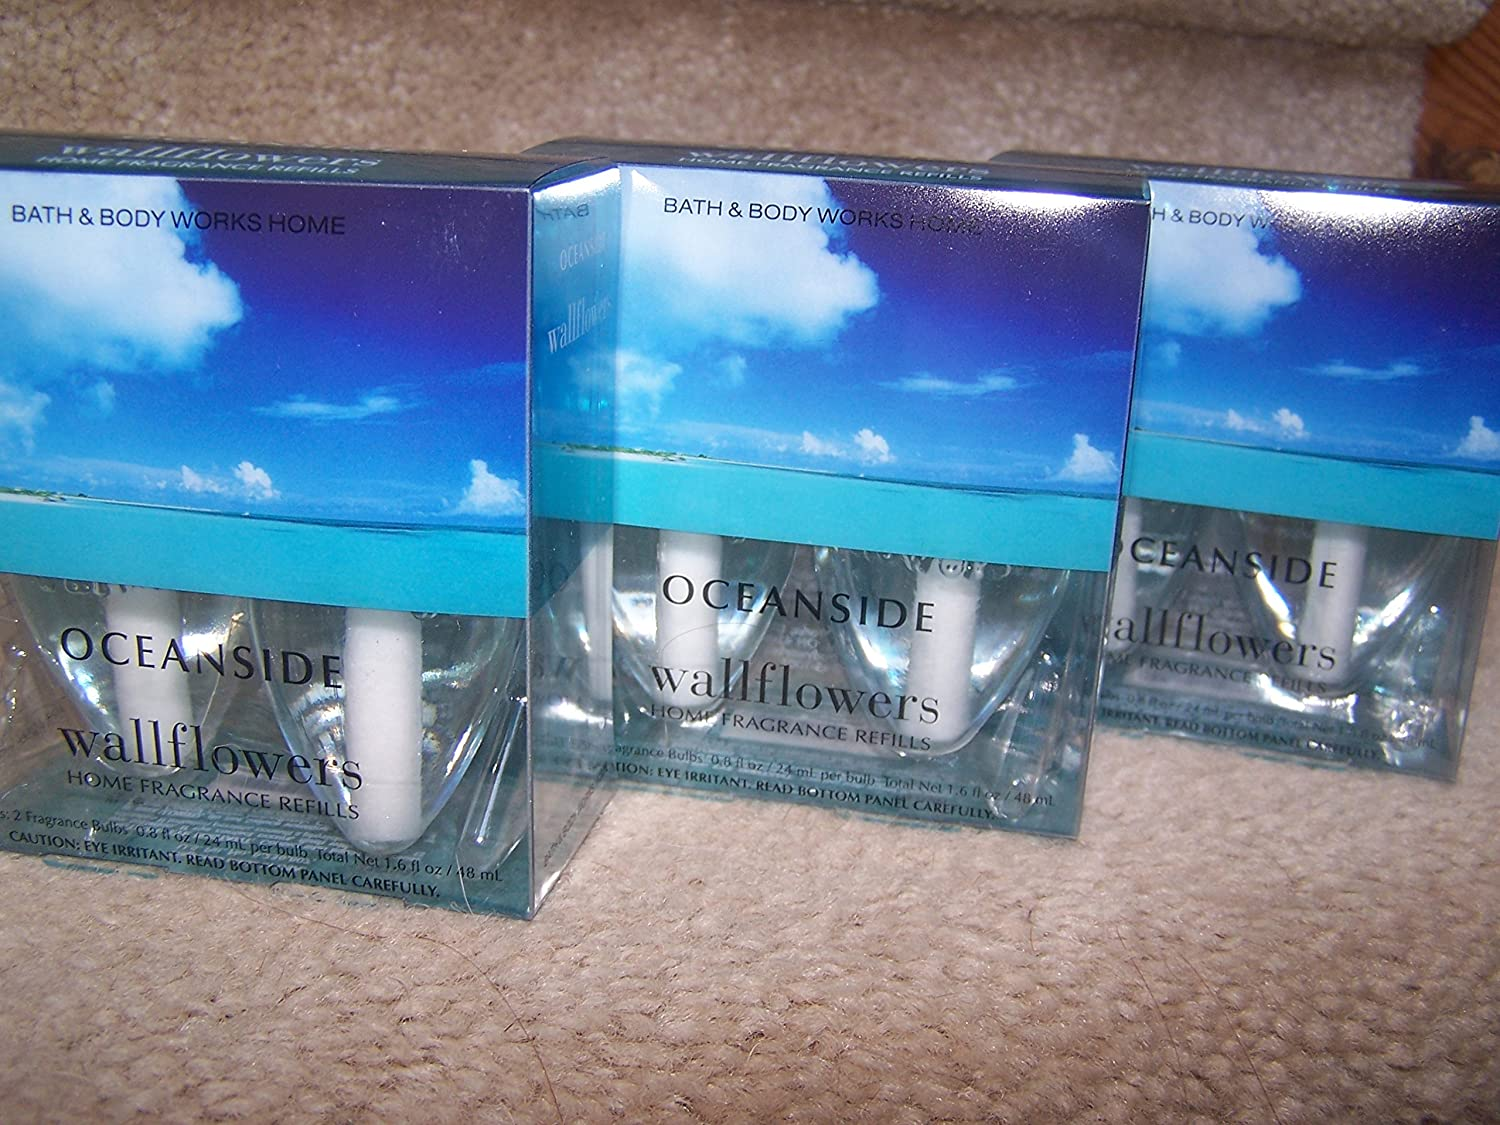 (Scented) - Lot of 3 Bath & Body Works Oceanside Wallflower 2 Bulb Refill Packs (6 Bulbs Total) B00QZNBKZK  香り付き